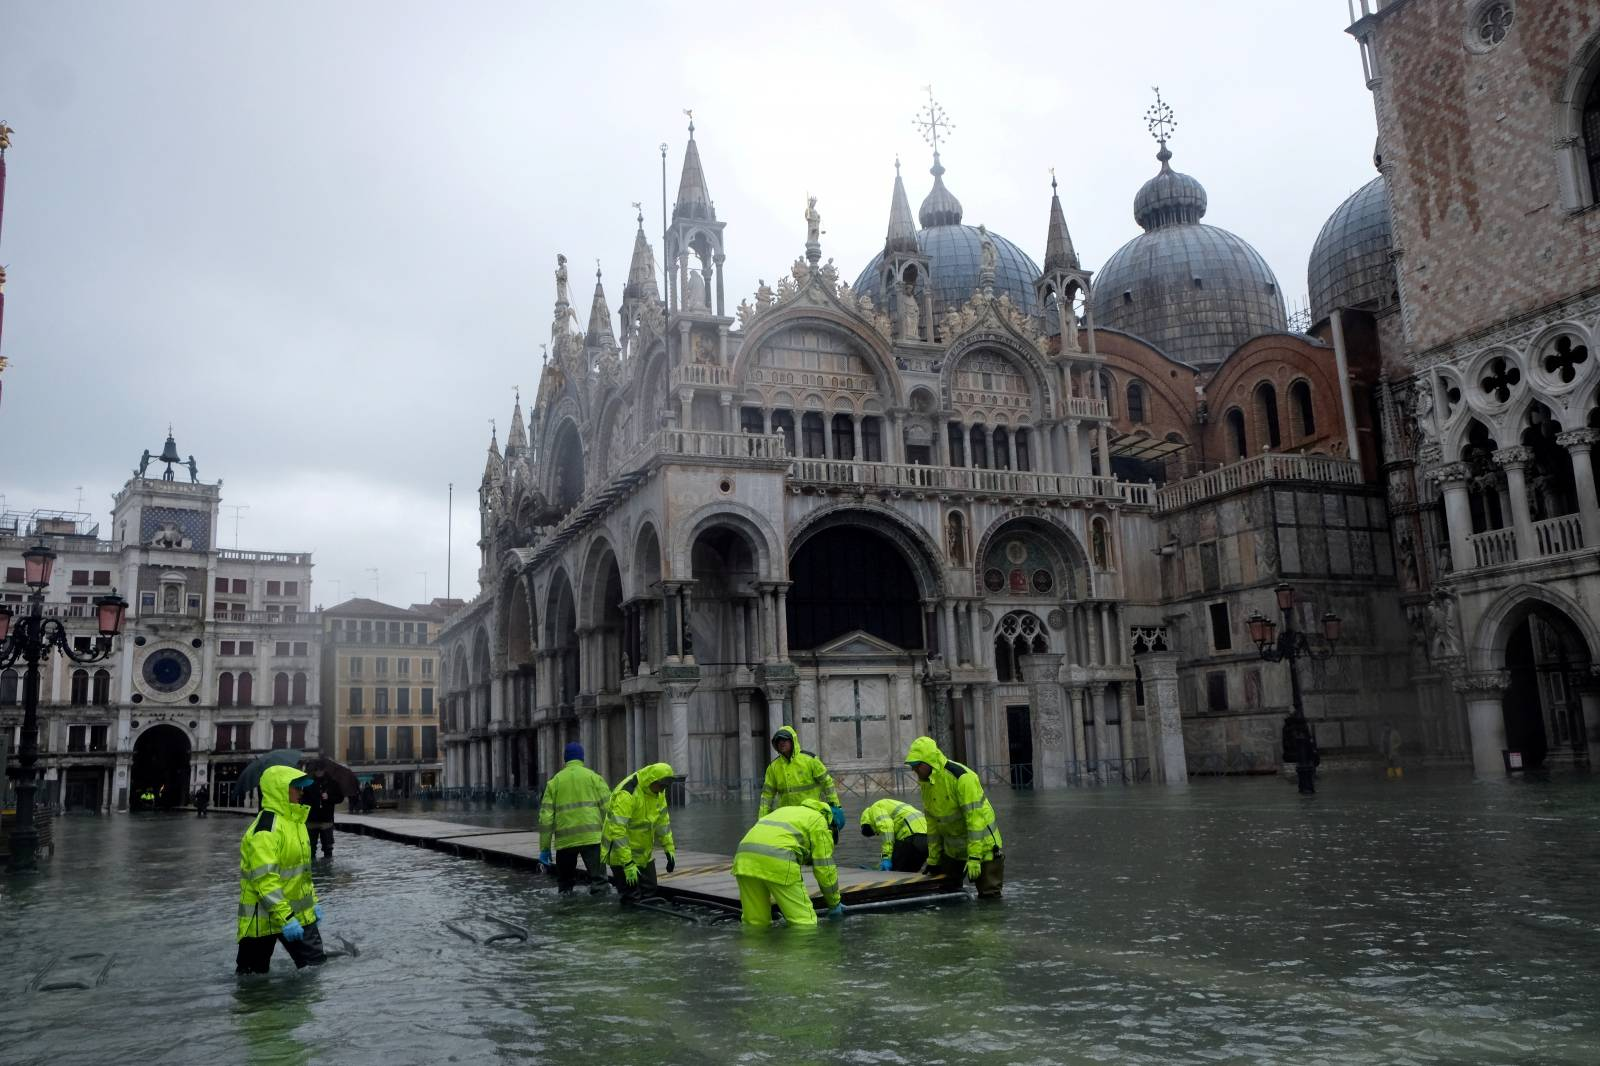 FILE PHOTO: Workers put up a platform at a flooded St. Mark's Square in Venice